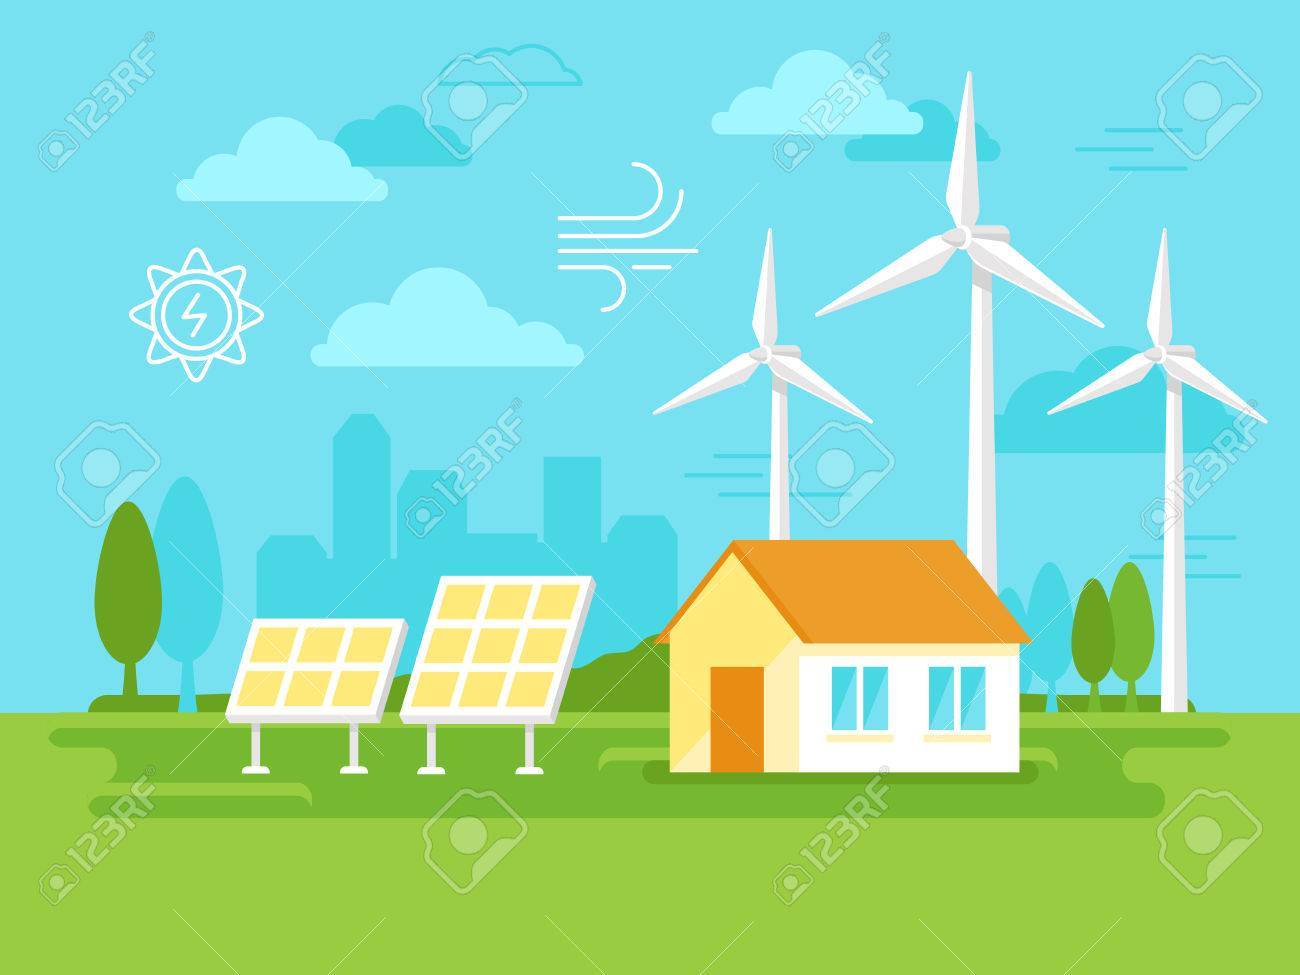 illustration in simple flat style - alternative and renewable energy - wind-powered electrical generators, solar panels and farm house with natural landscape - 61700625